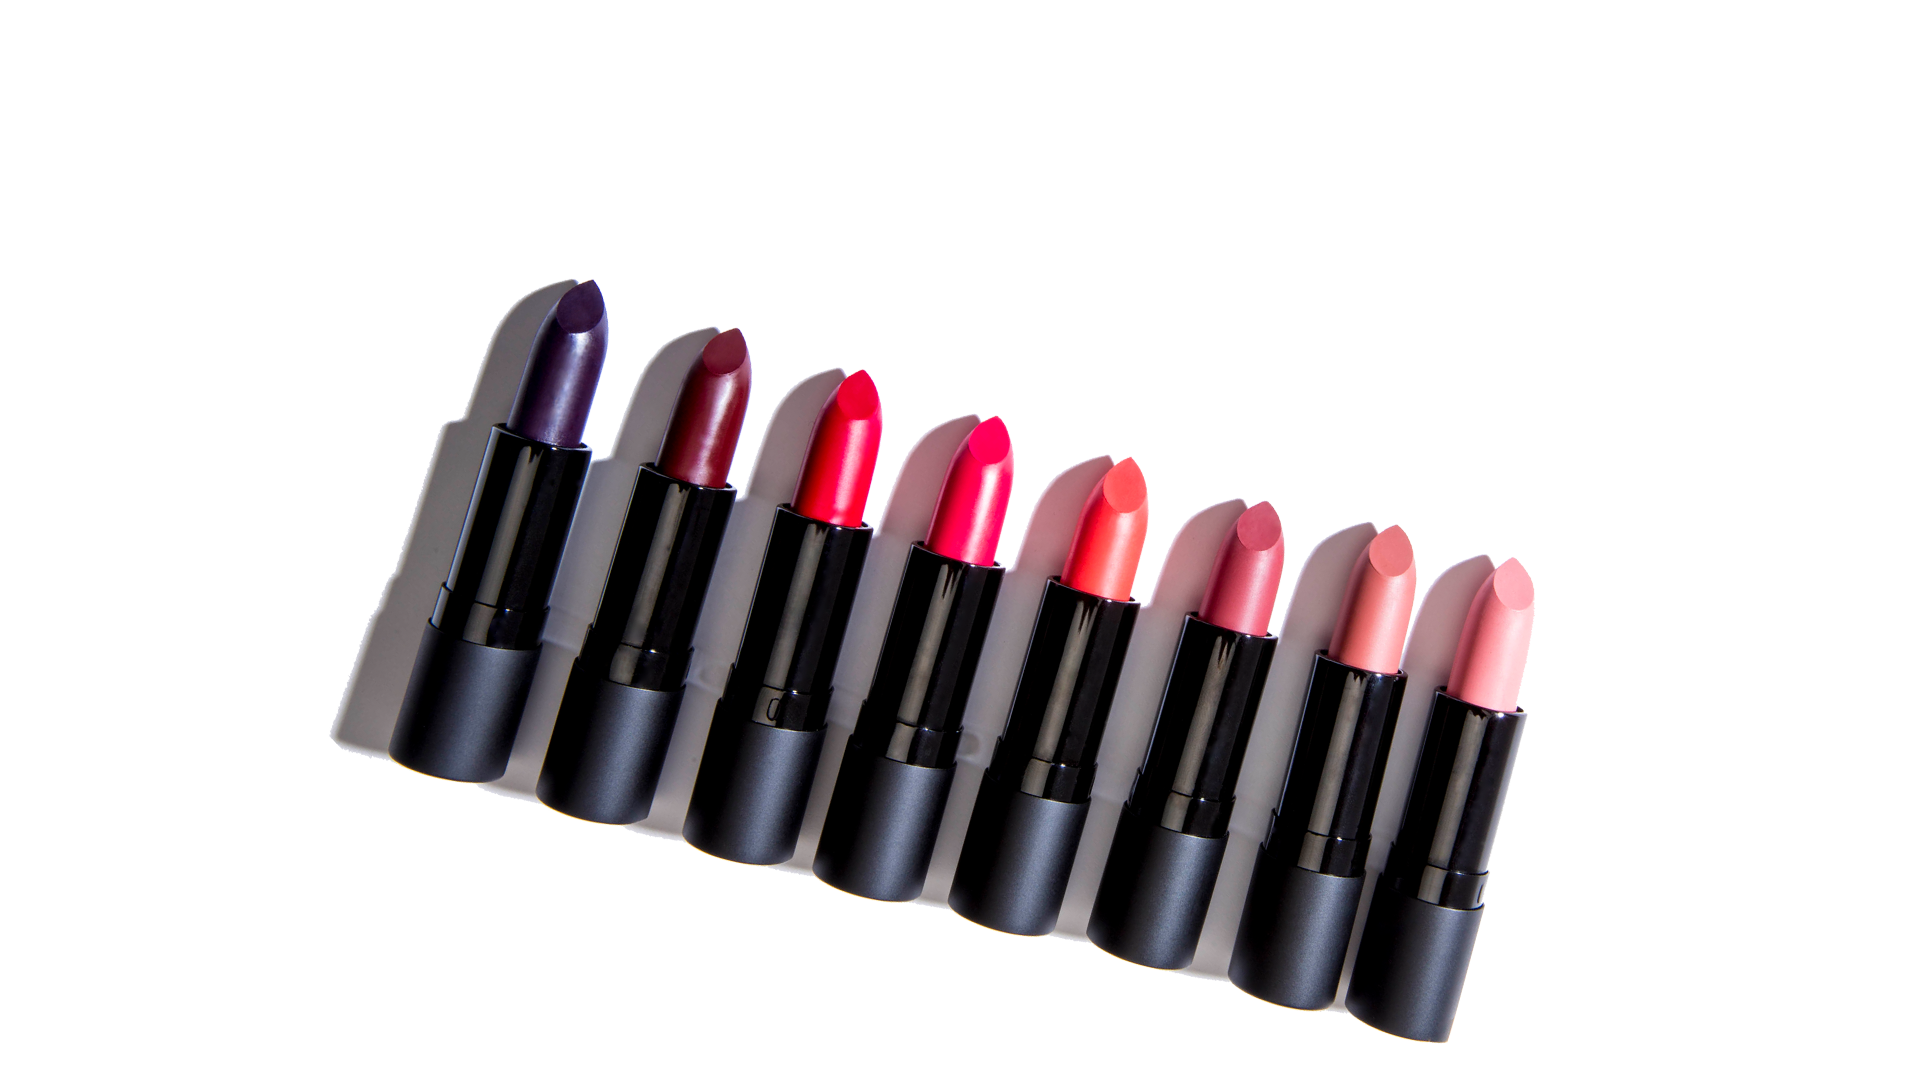 Row of a variety of uncapped Lux Lipstick sticks